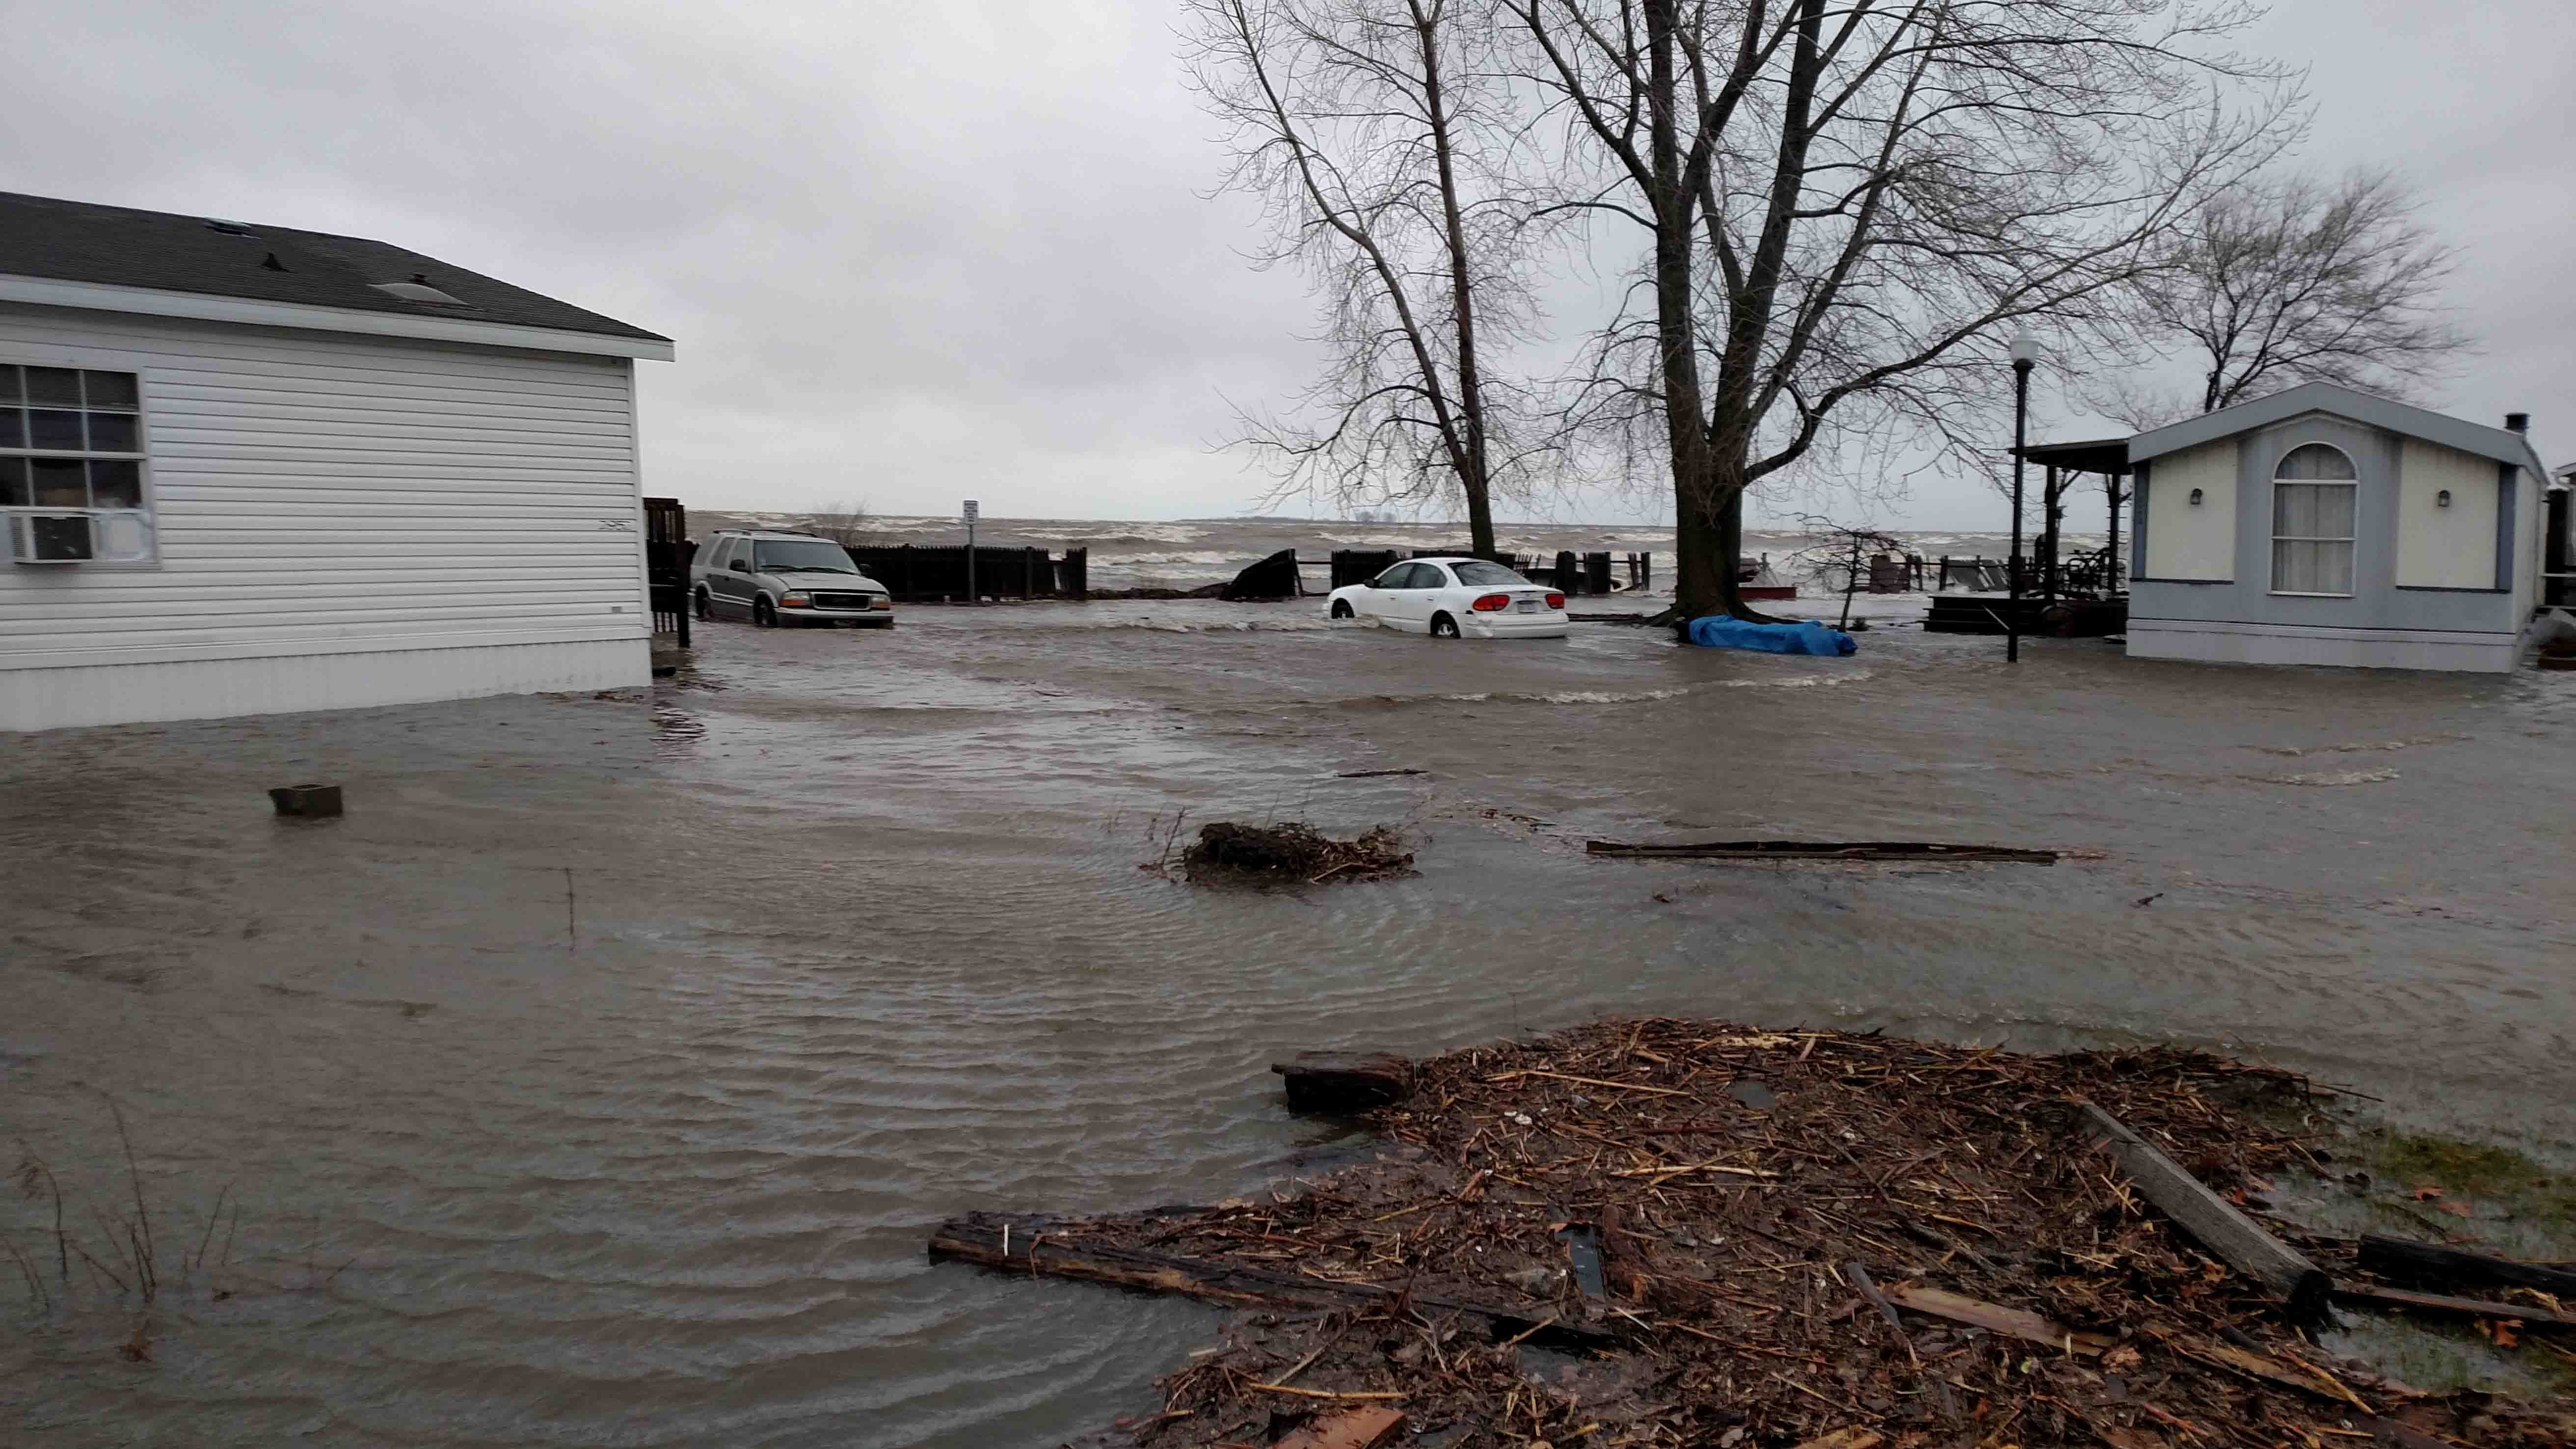 Heavy flooding at a Bay County mobile home park. Saginaw Bay visible in the background.